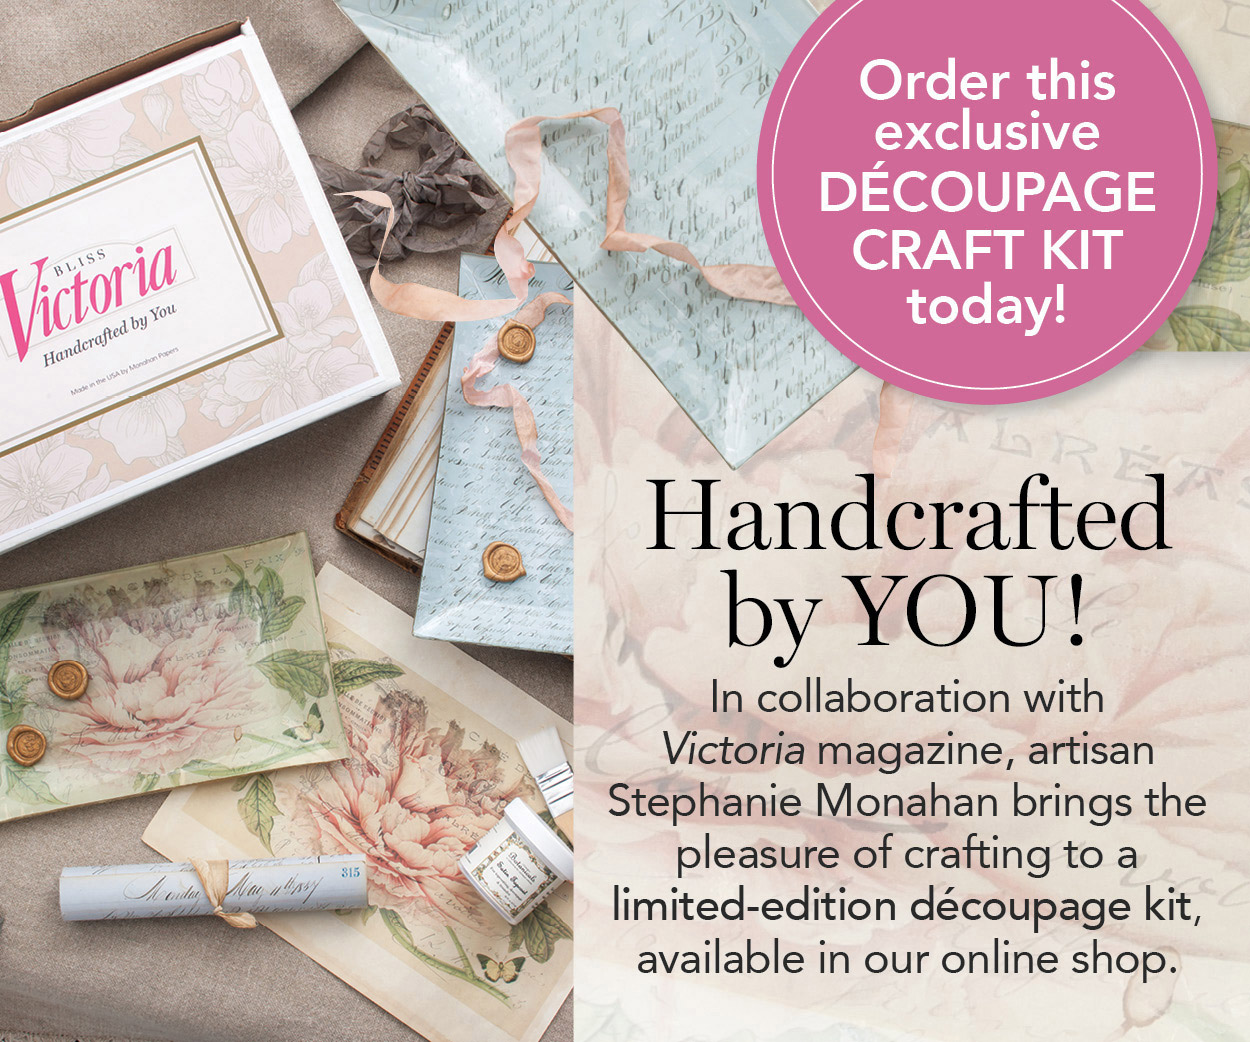 Order this exclusive Decoupage Craft Kit today!